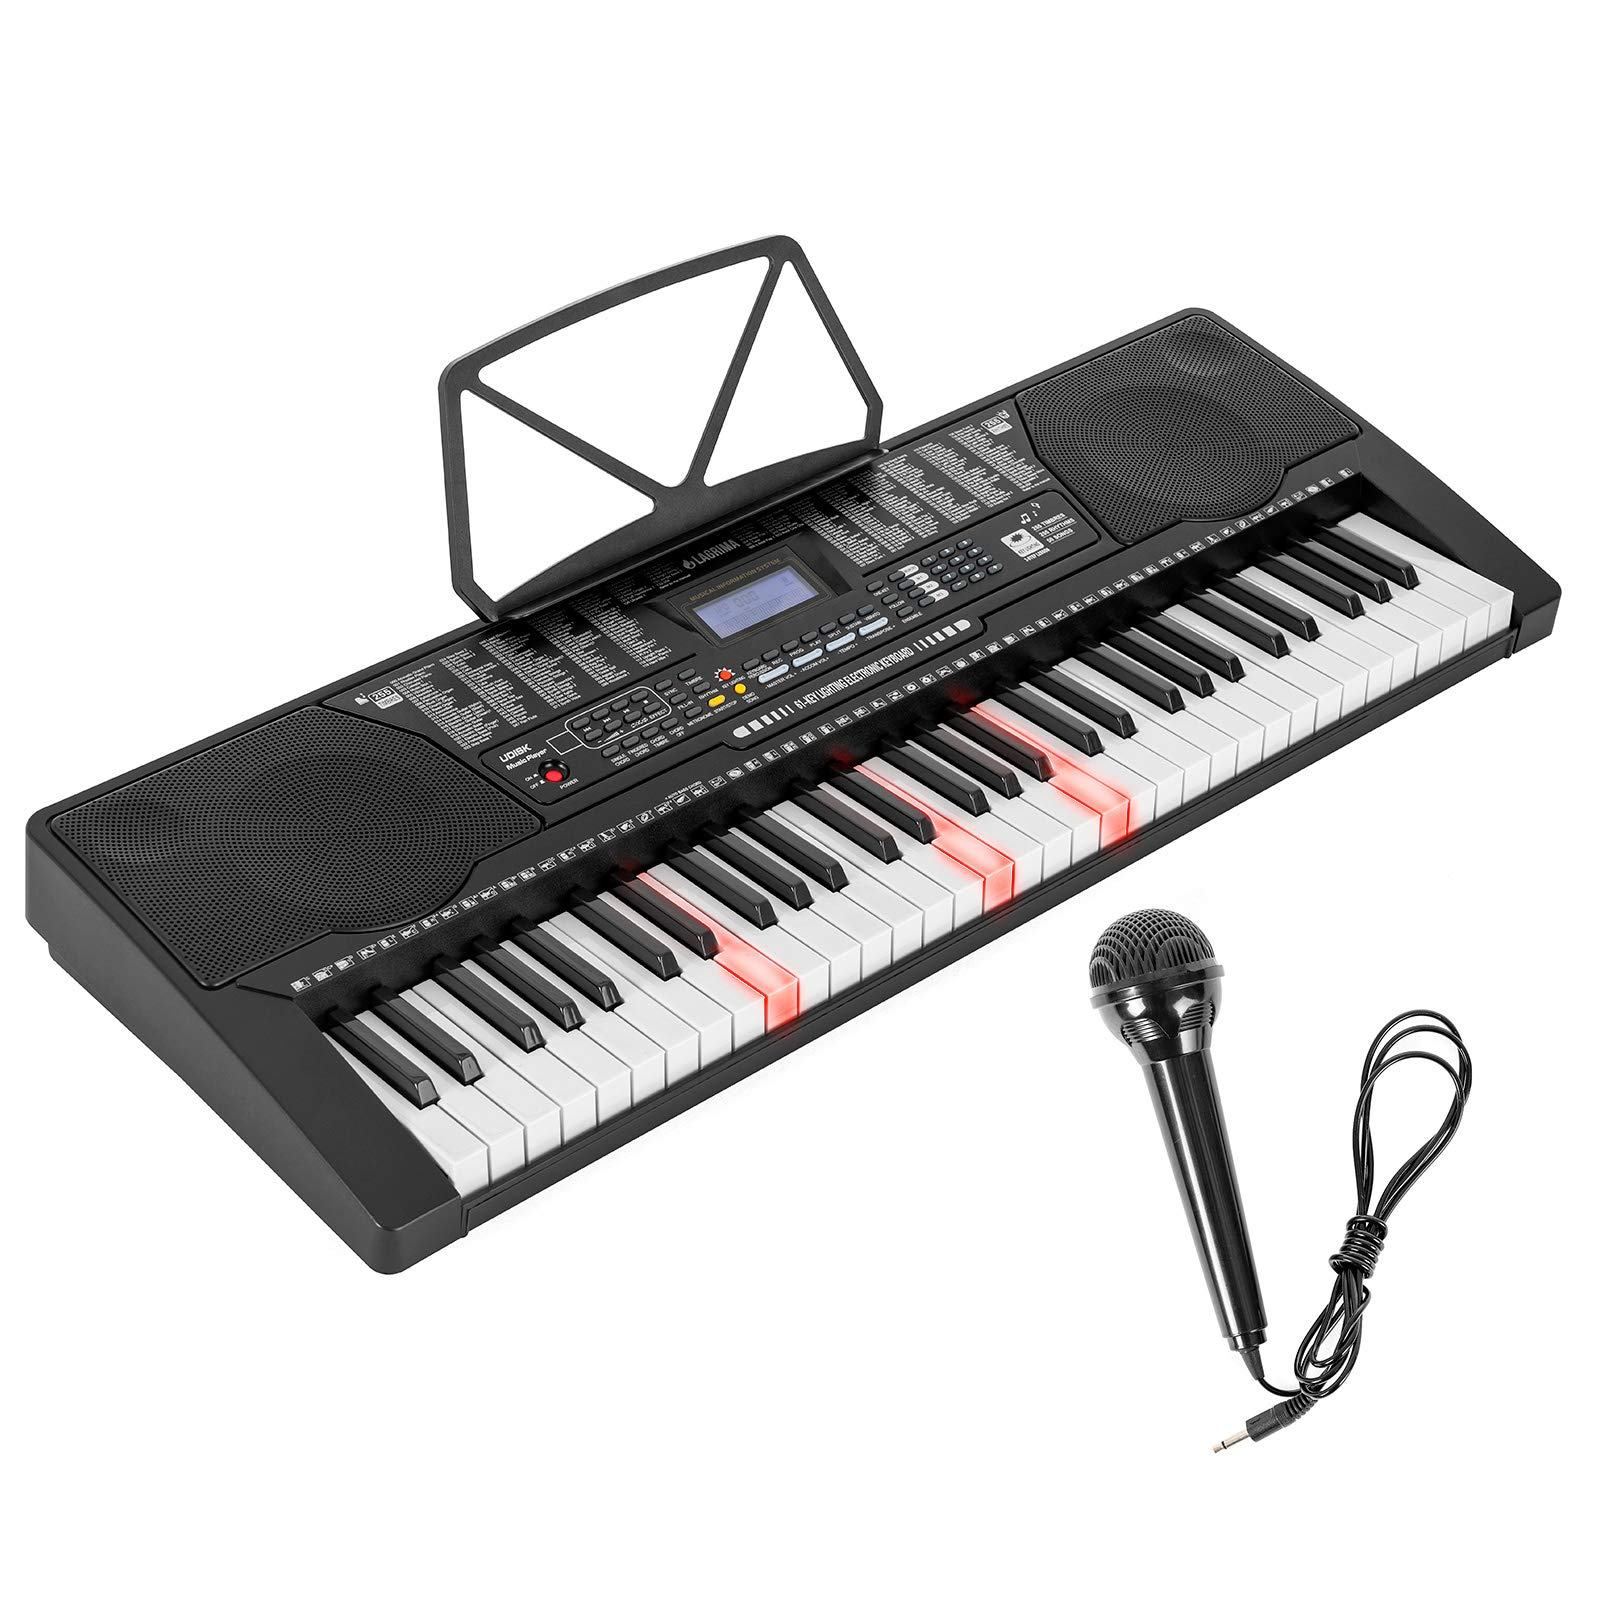 LAGRIMA 61 Key Electric Keyboard Piano w/Light Up Keys for Beginner, Lighted Portable Keyboard w/Music Player Function, Micphone, Power Supply, Music Stand, Black by LAGRIMA (Image #1)